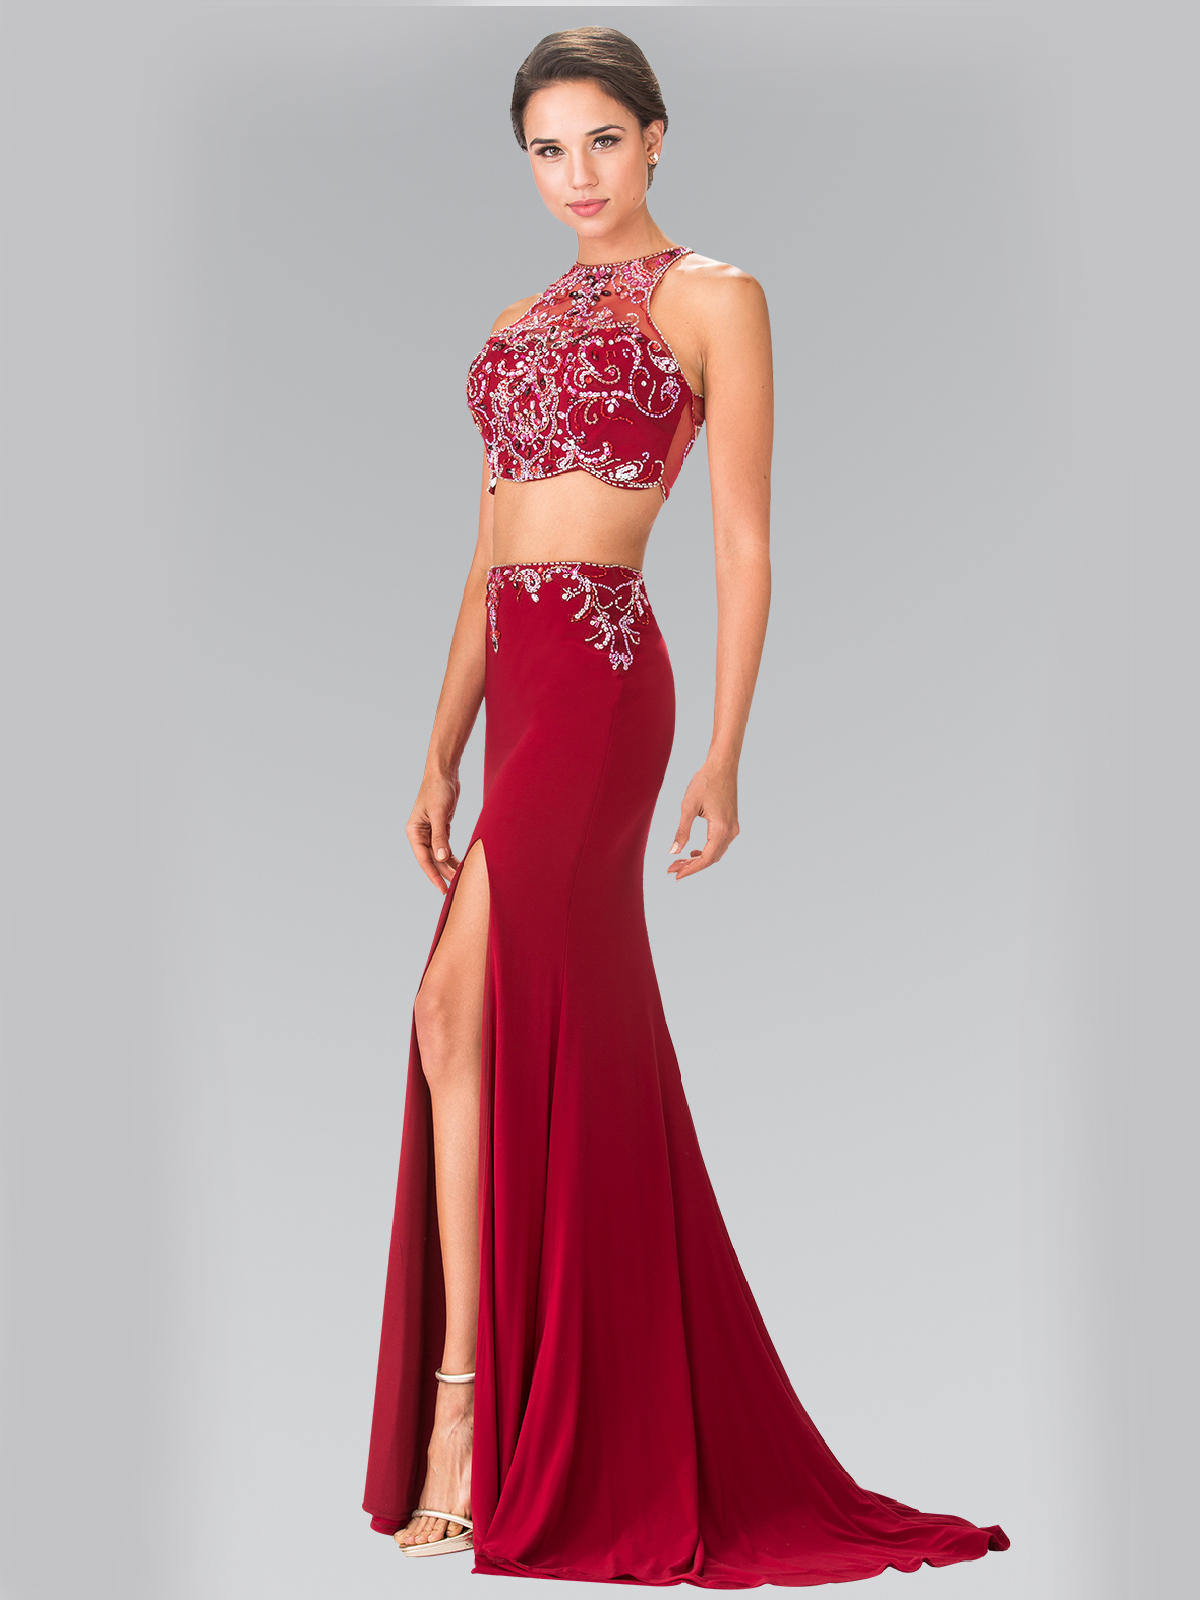 Two-Piece Beaded Long Prom Dress with Slit   Sung Boutique L.A.